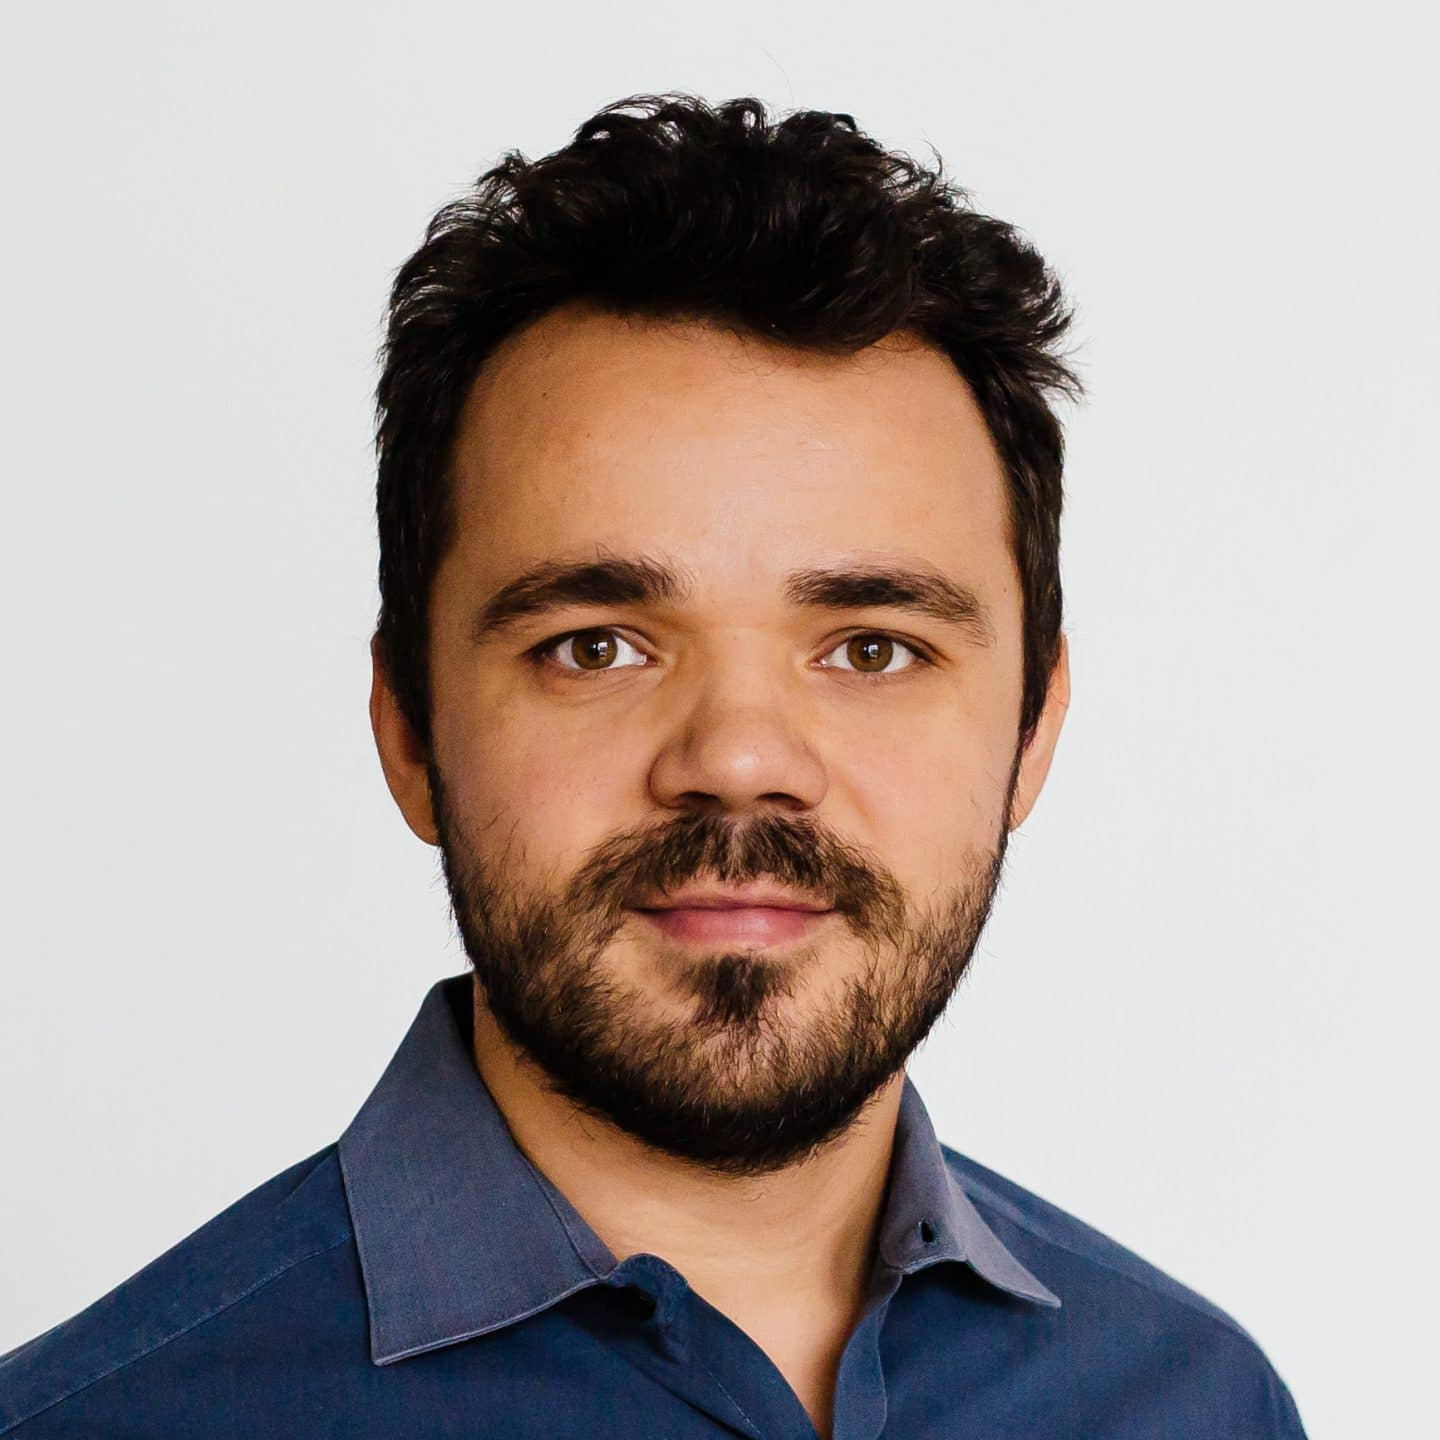 Daniel Boteanu, CEO at Rampiva